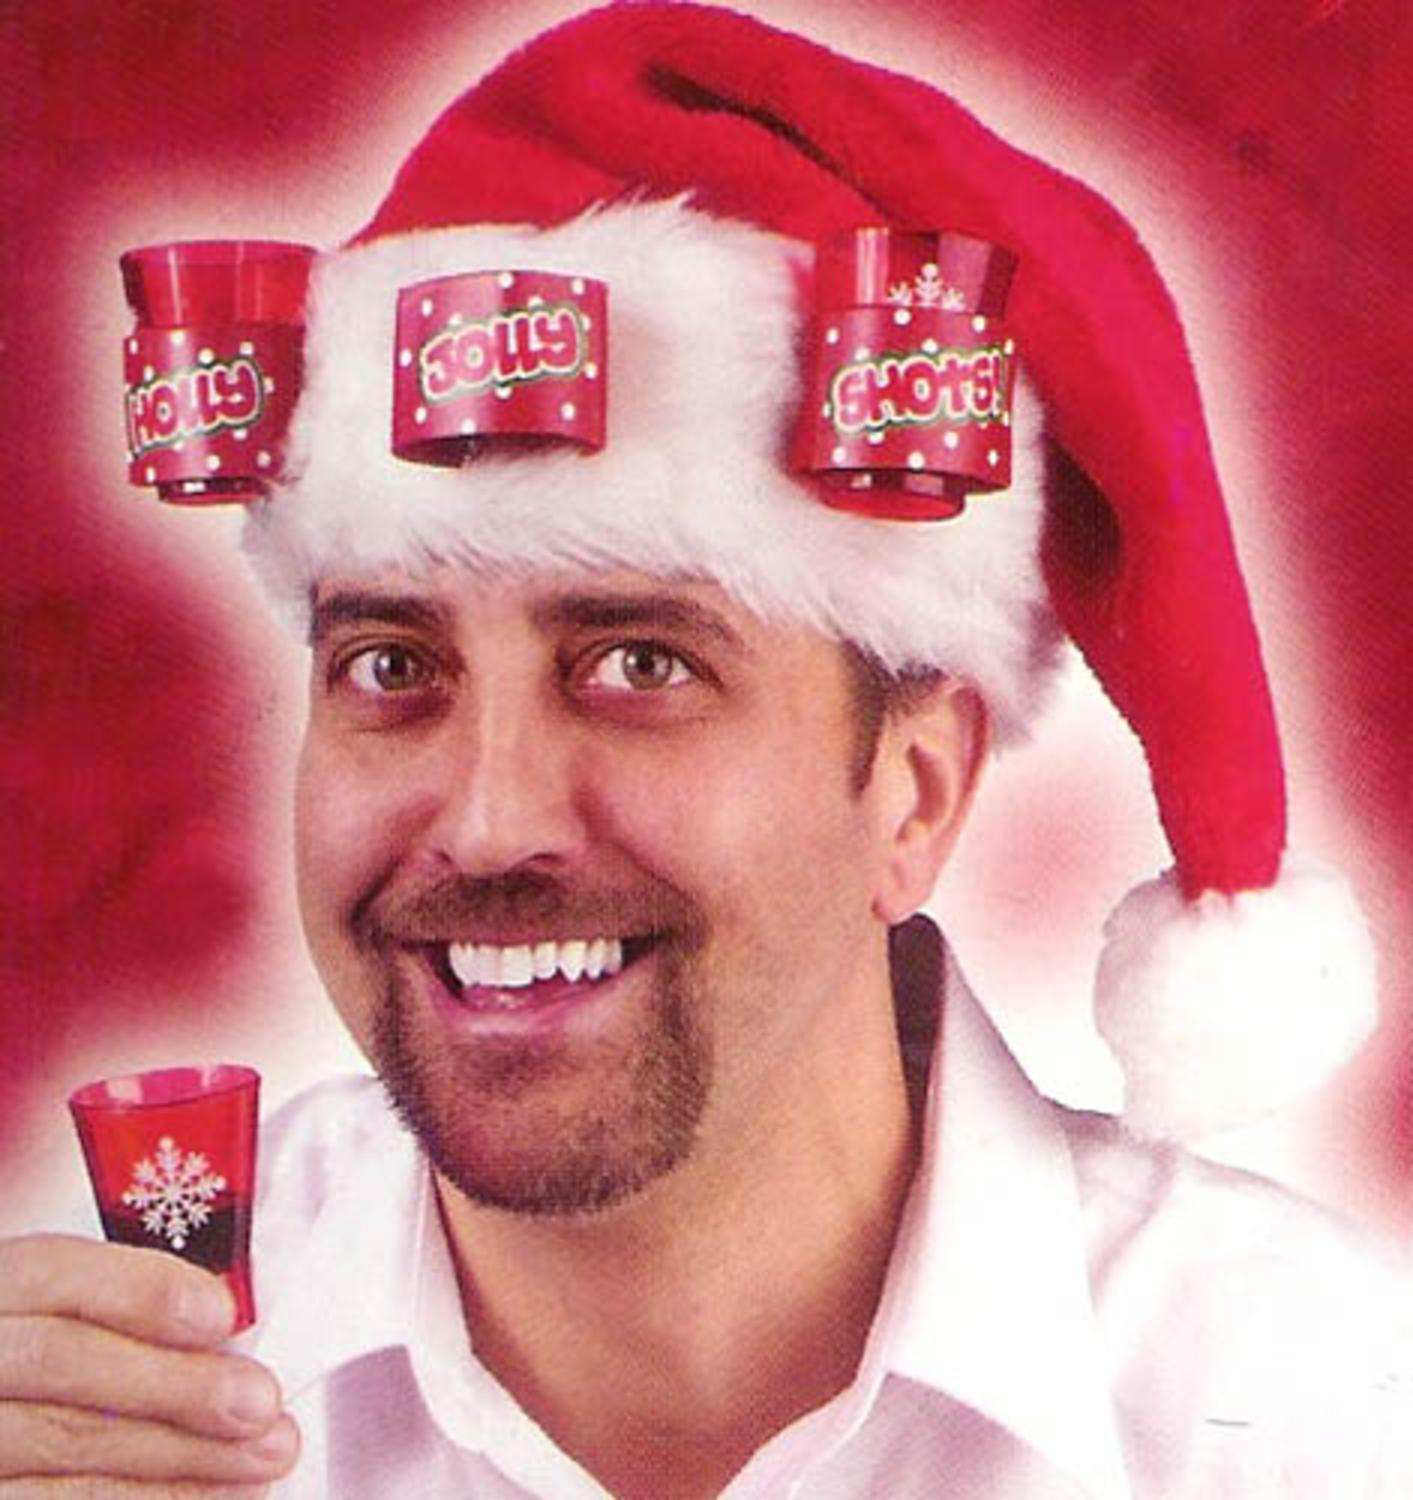 The Ultimate Adult Party Christmas Santa Hat - Holds 3 Shot Glasses